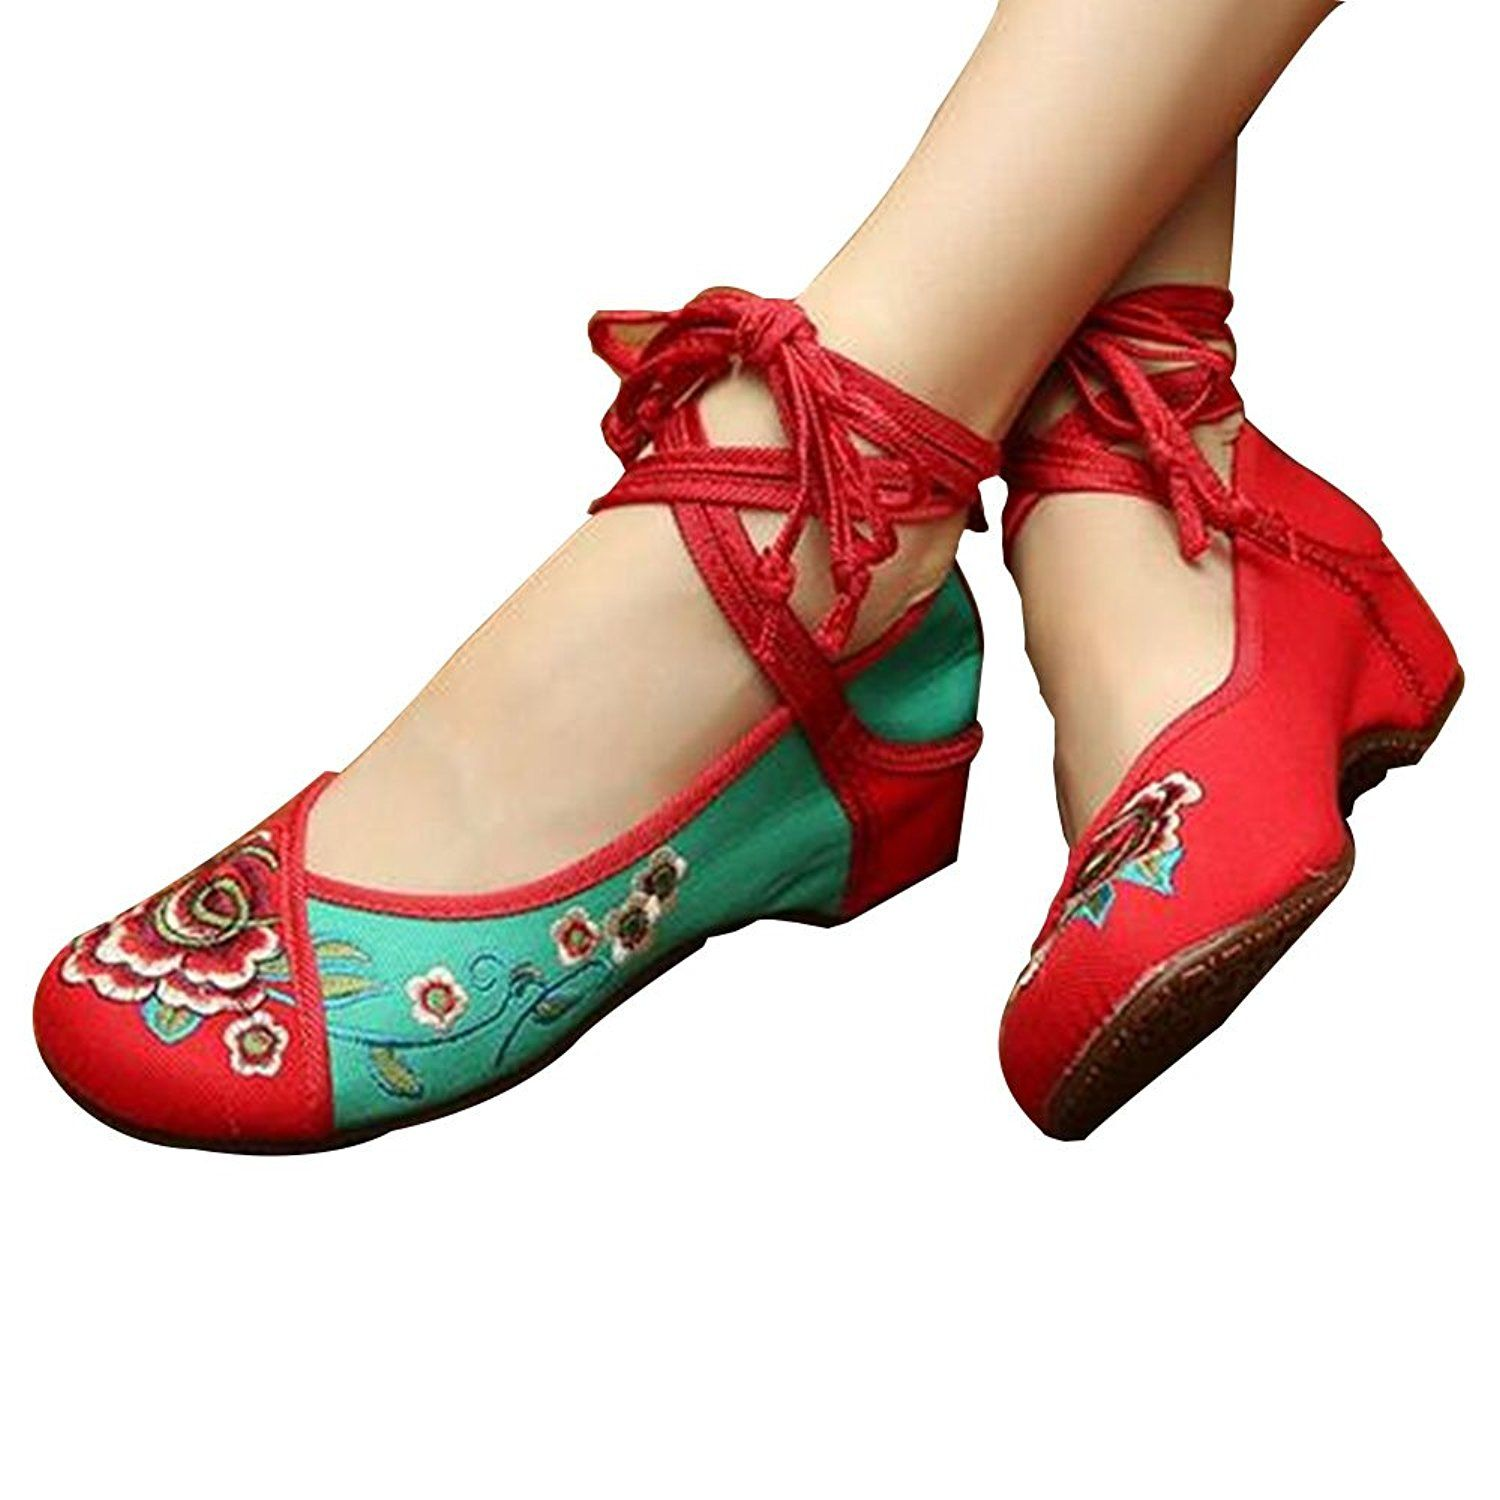 Chinese Embroidered Floral Shoes Women Ballerina Mary Jane Flat Ballet Cotton Loafer Red and Green